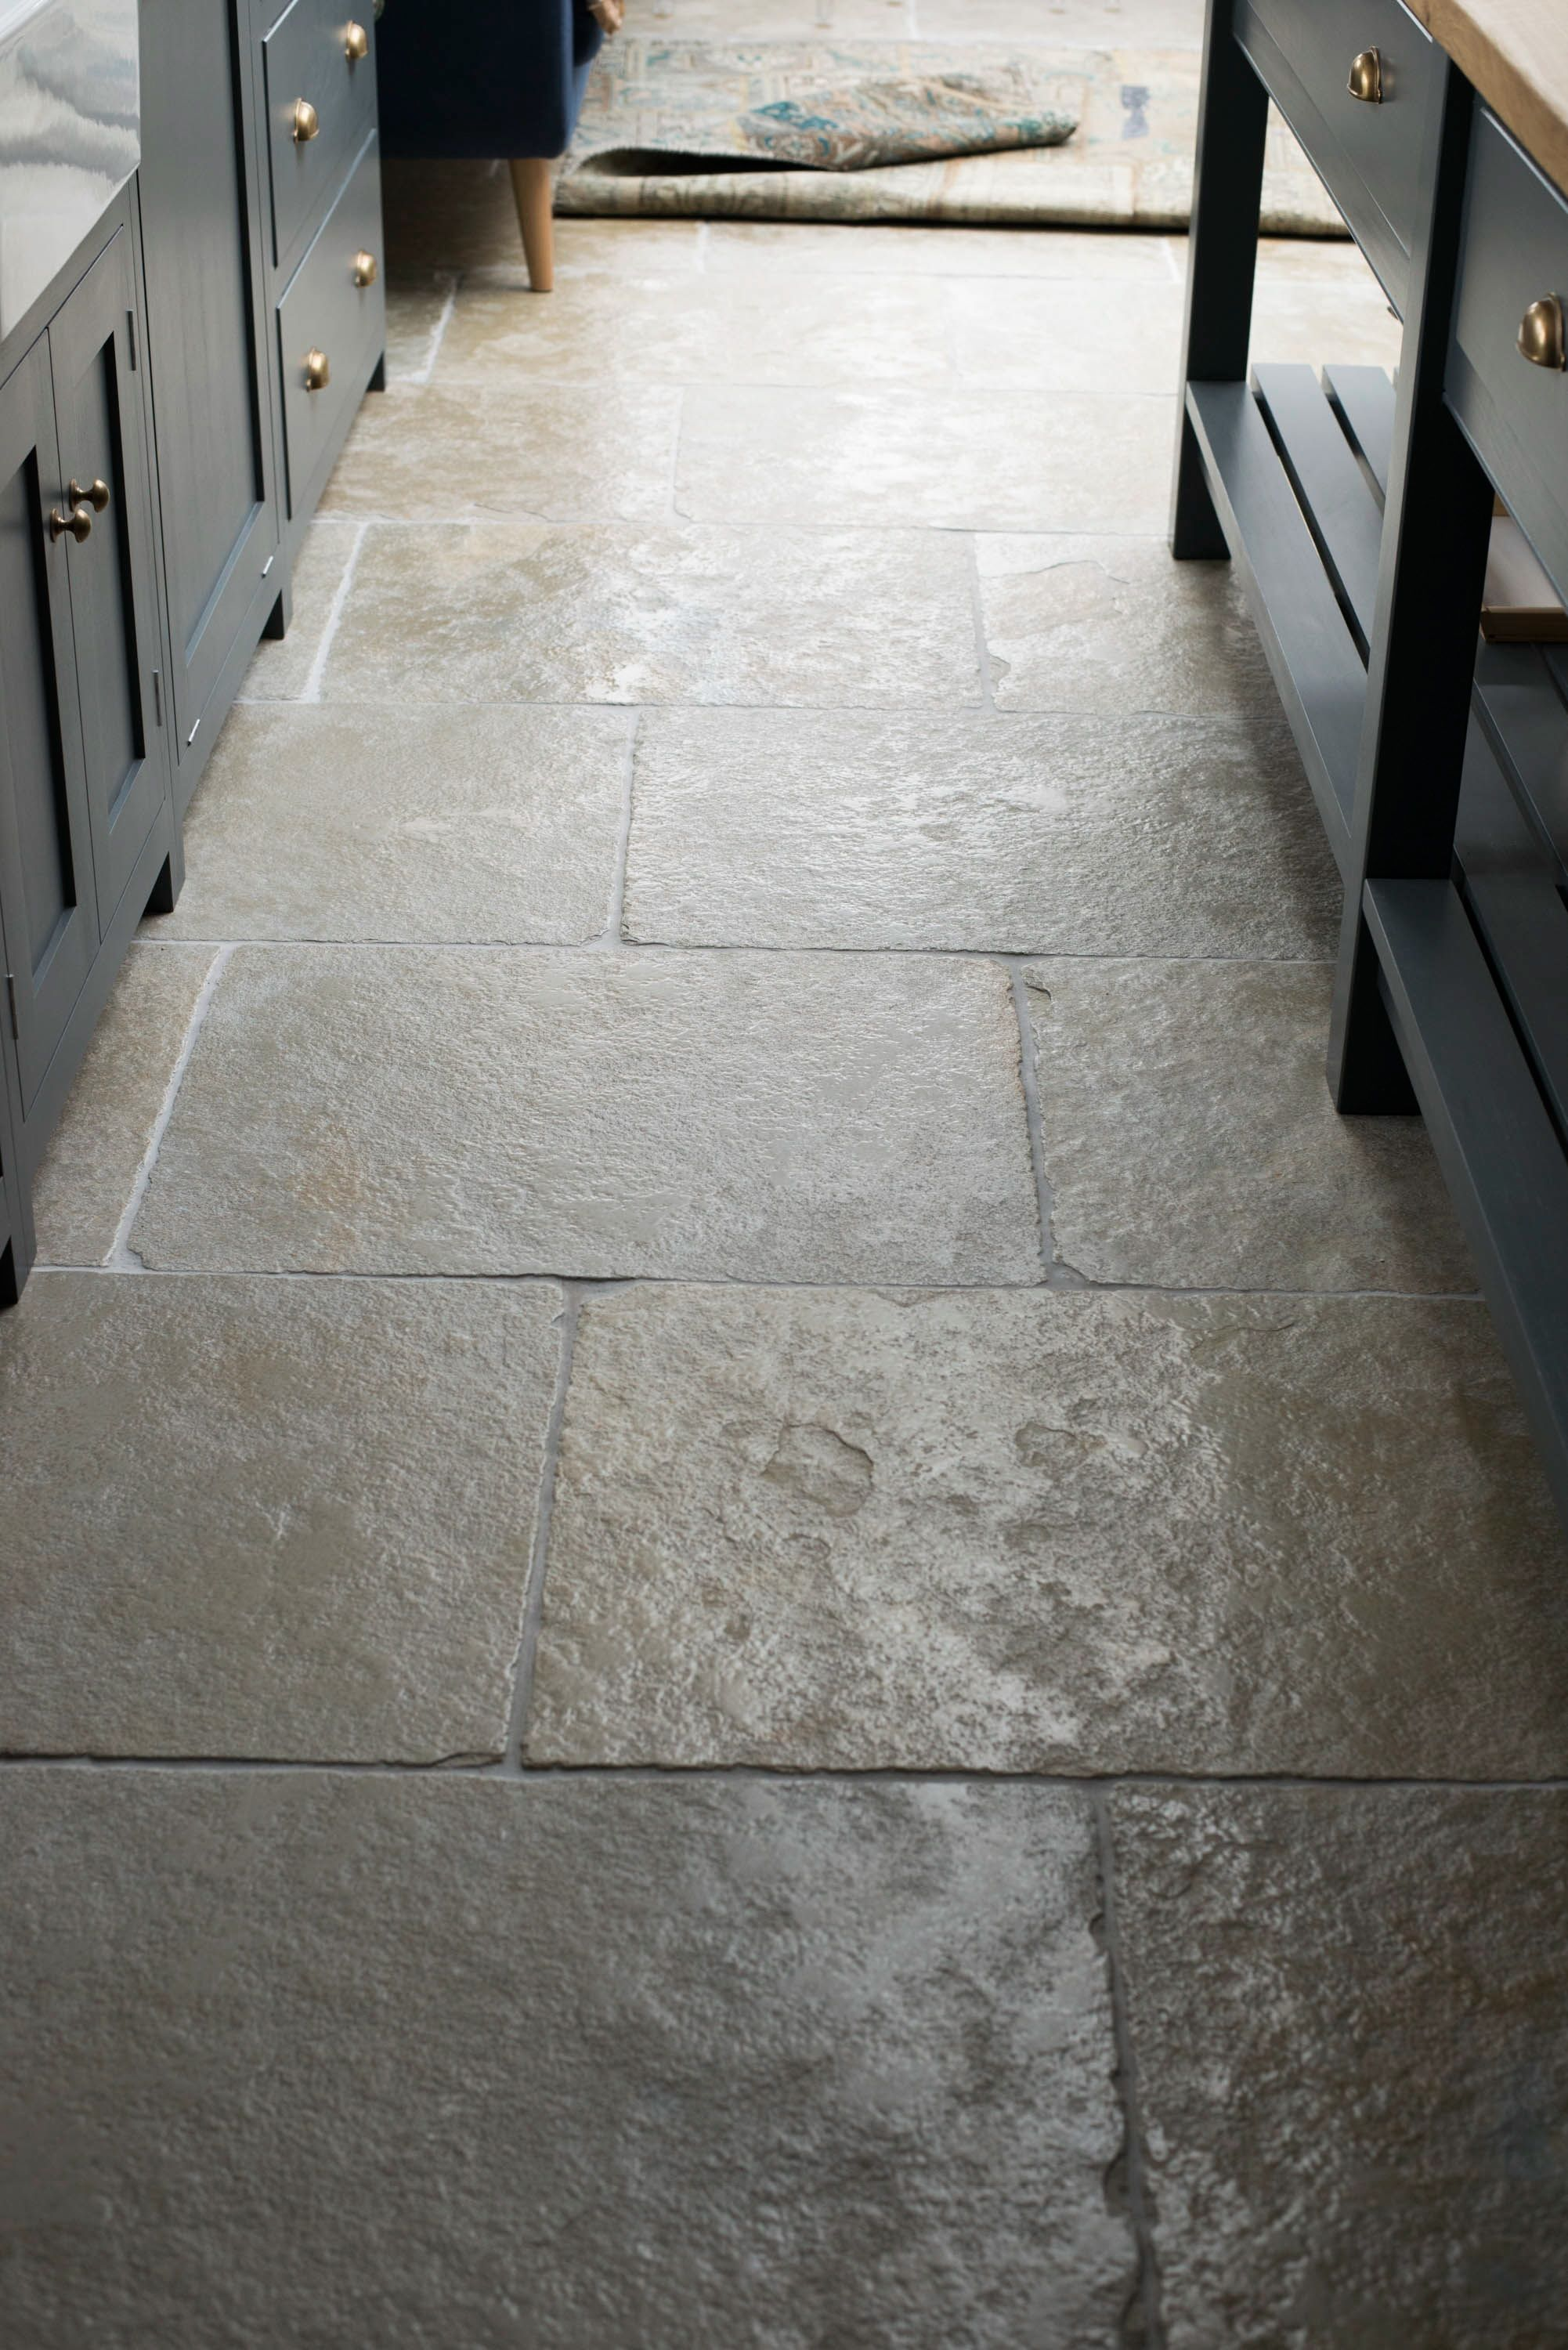 A Close Up Of The Umbrian Limestone Laid In 700x560 In The Hampton Court Kitchen Stone Flooring Stone Tile Flooring Natural Stone Flooring